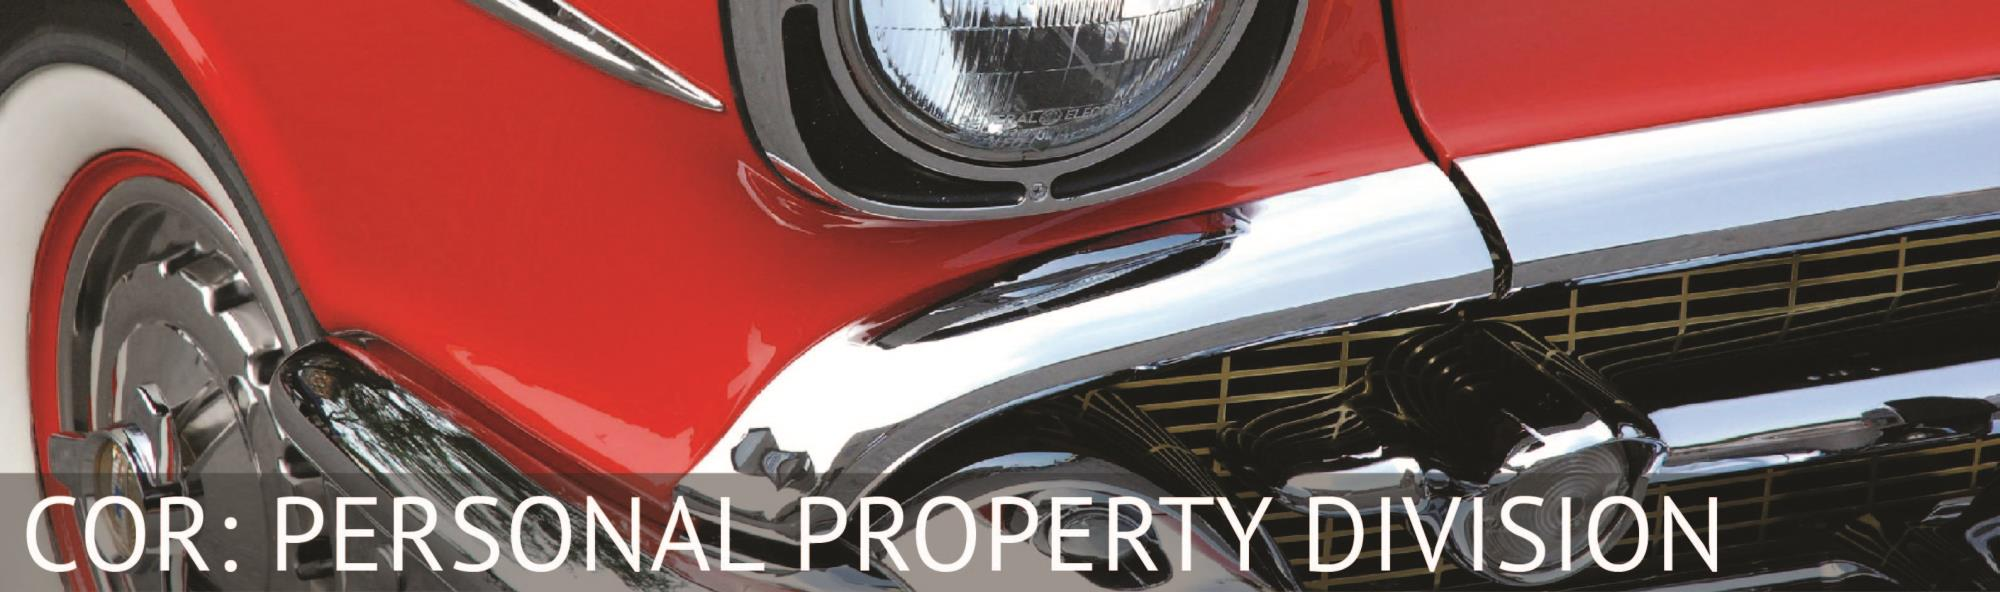 cor_personal_property_banner-01